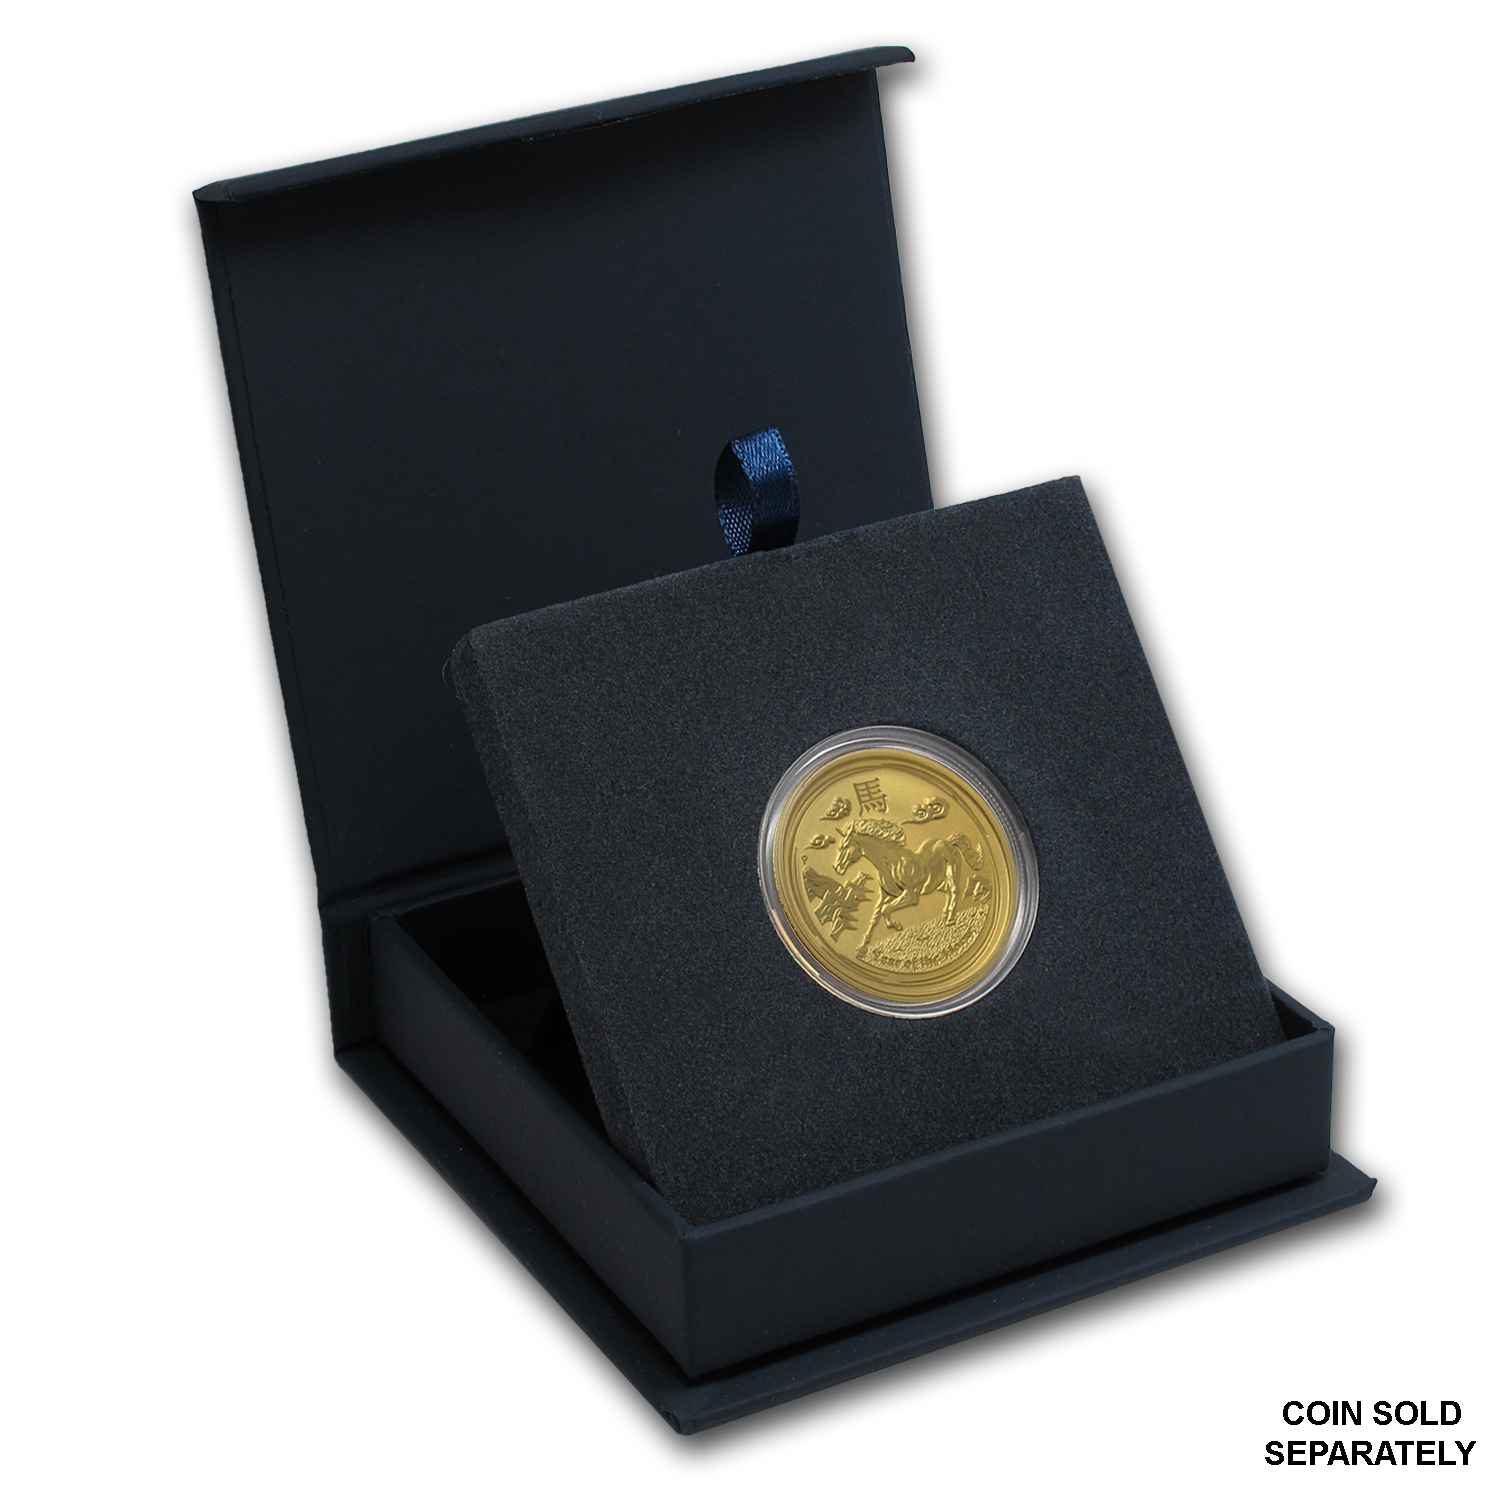 APMEX Gift Box - 1/2 oz Perth Mint Gold Coin Series 2